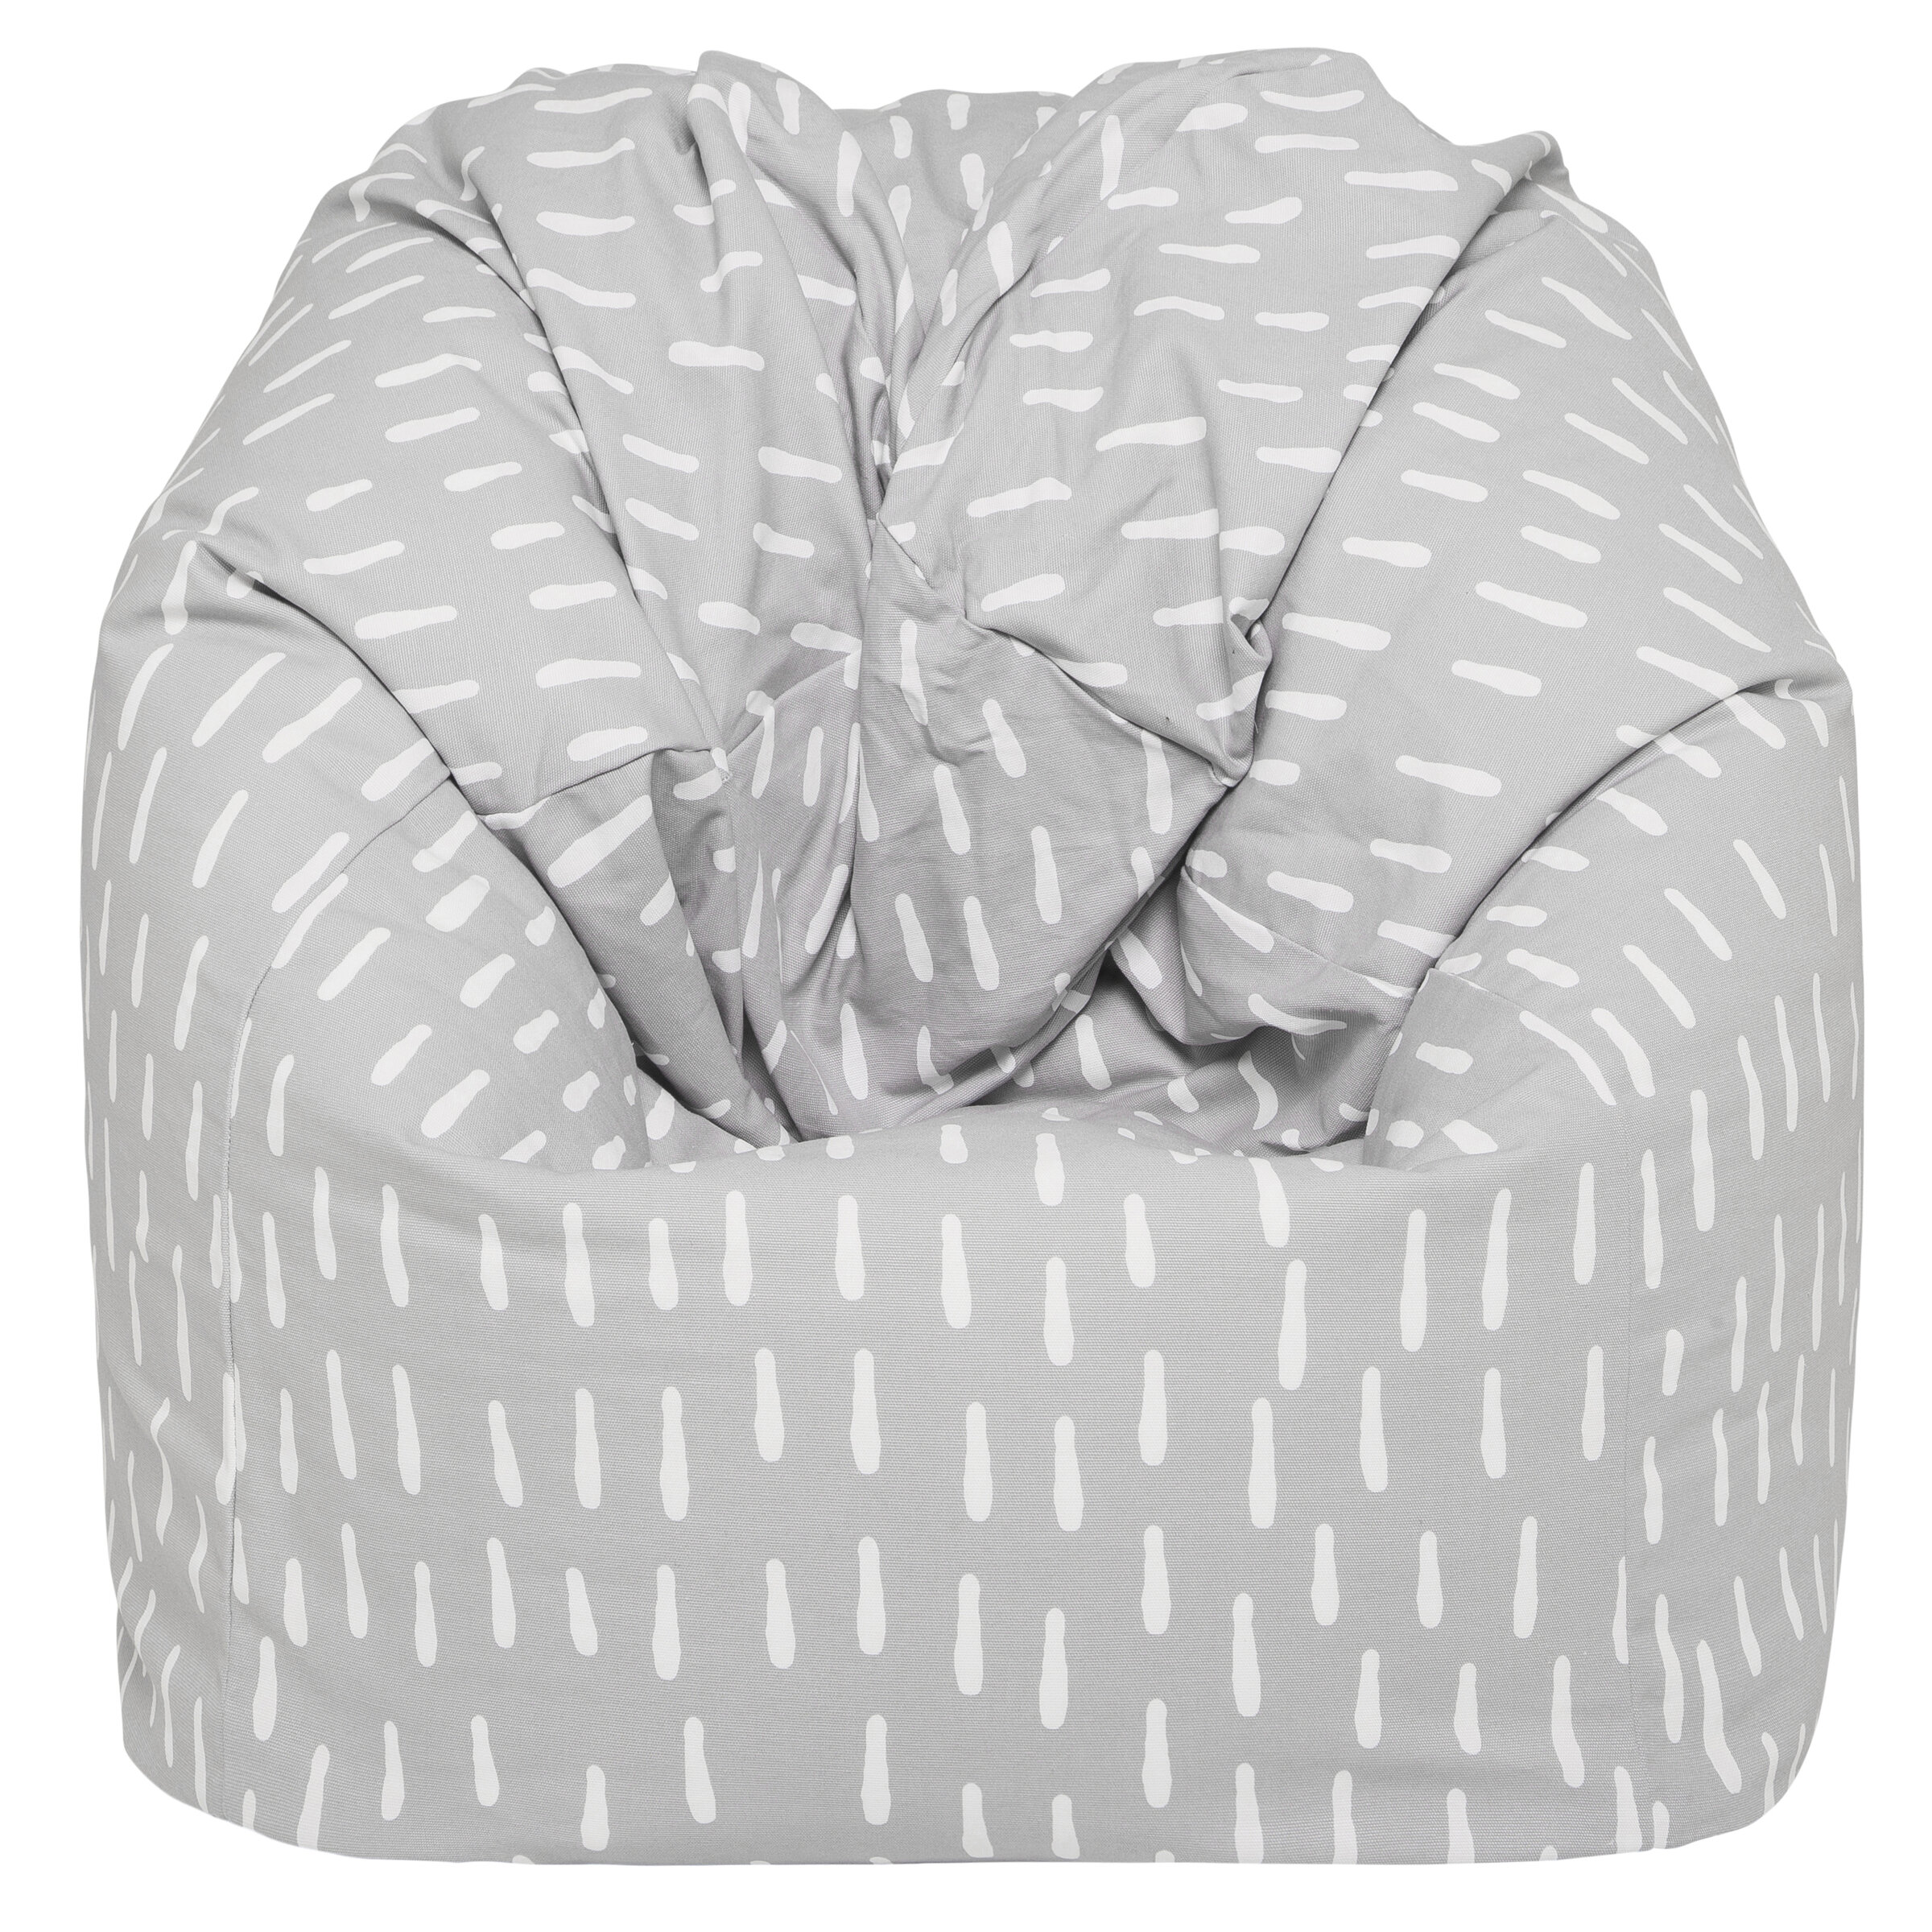 Isabelle Max Raindrops Small 100 Cotton Bean Bag Cover Wayfair